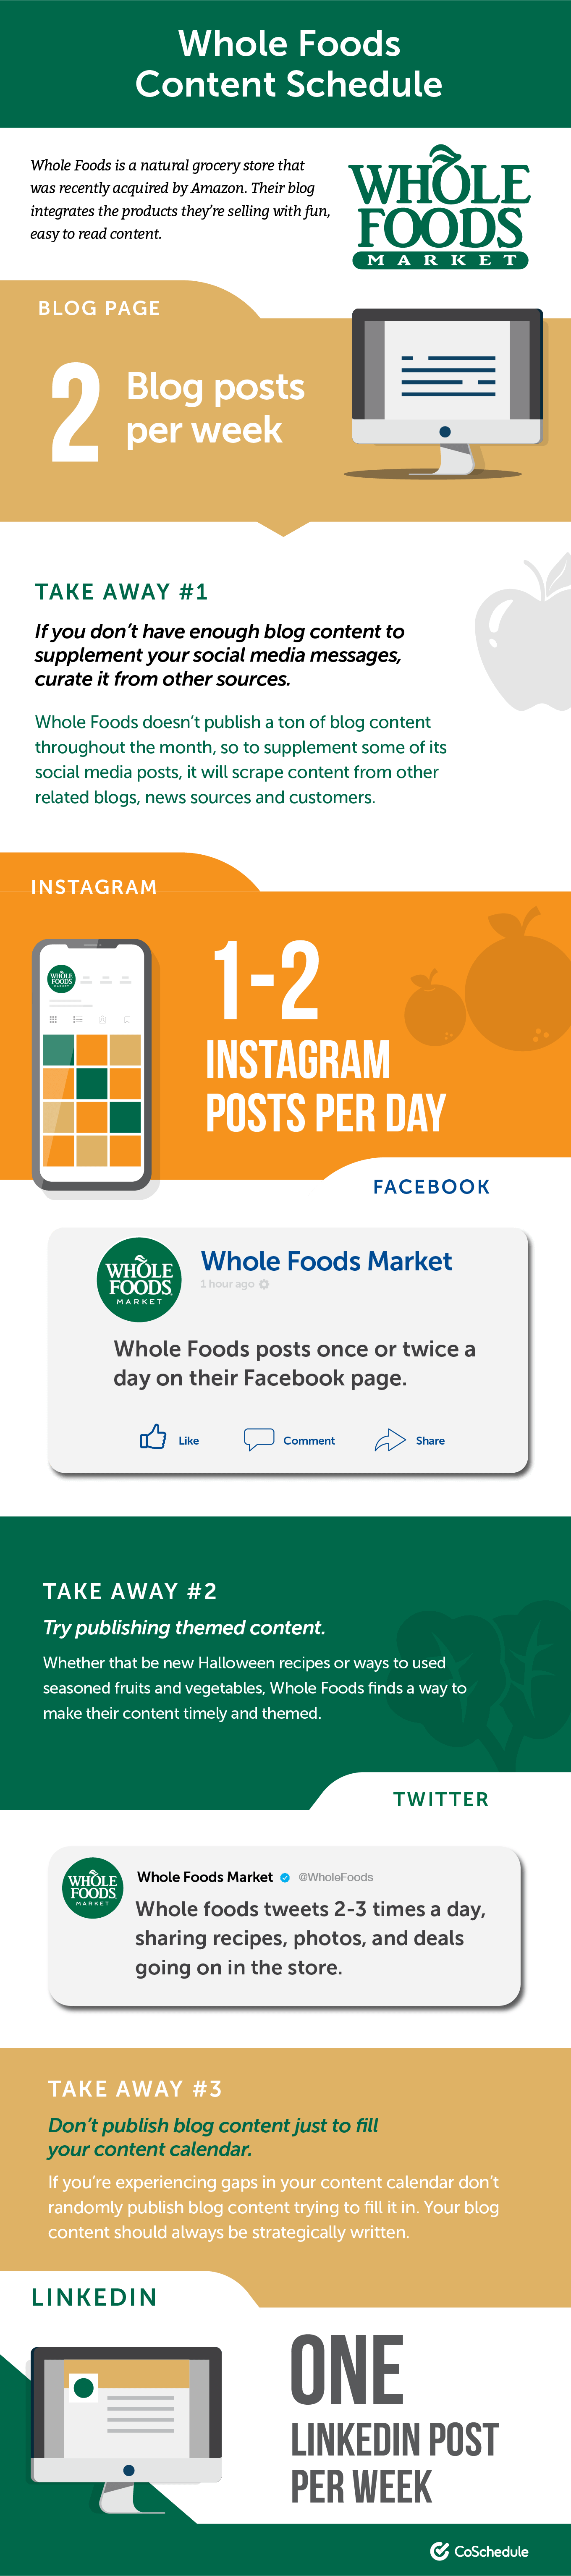 Whole Foods content schedule